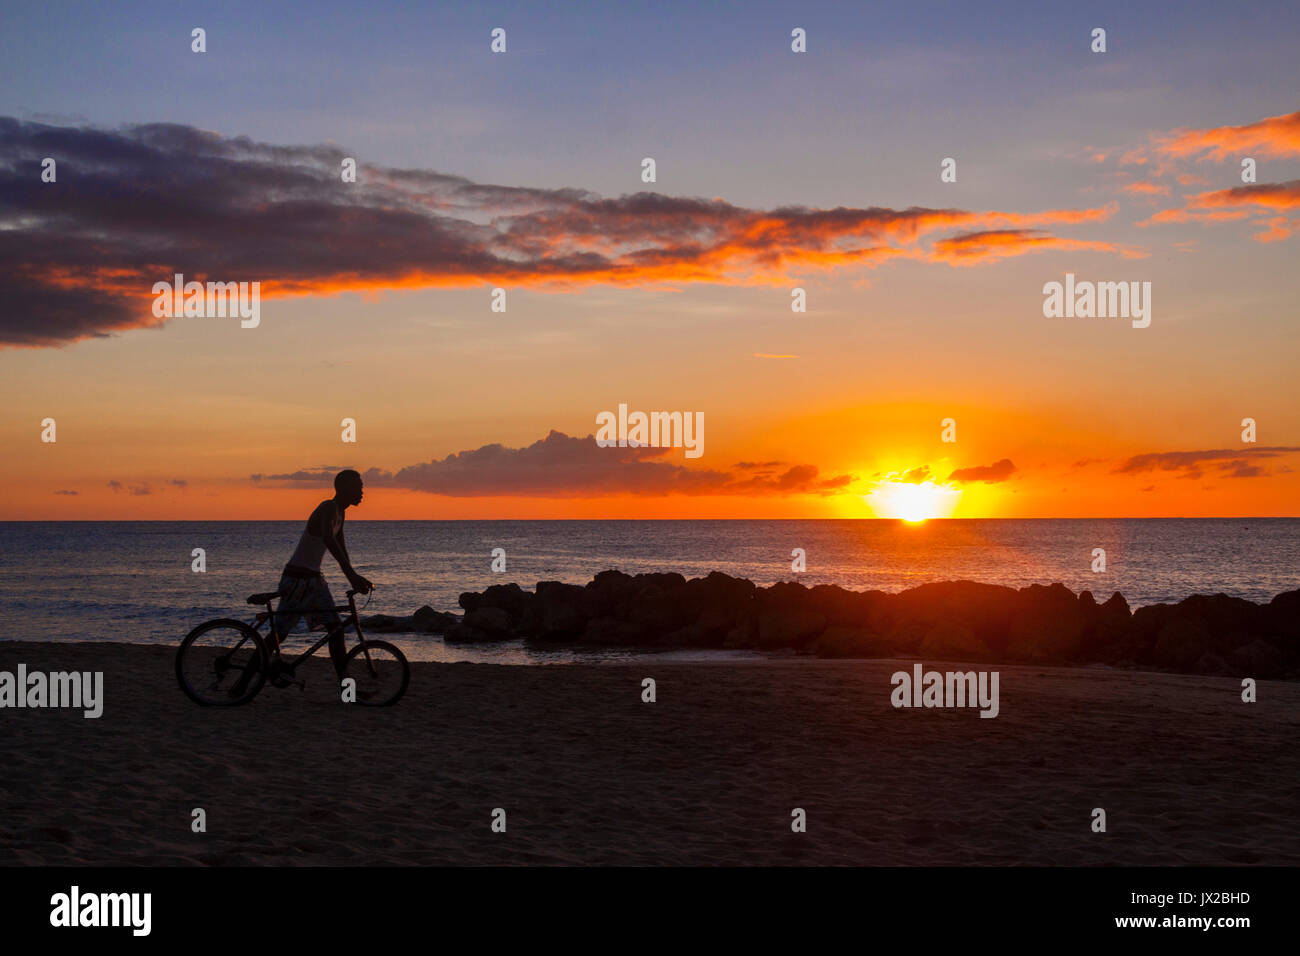 a-young-mam-pushes-his-bicycle-along-the